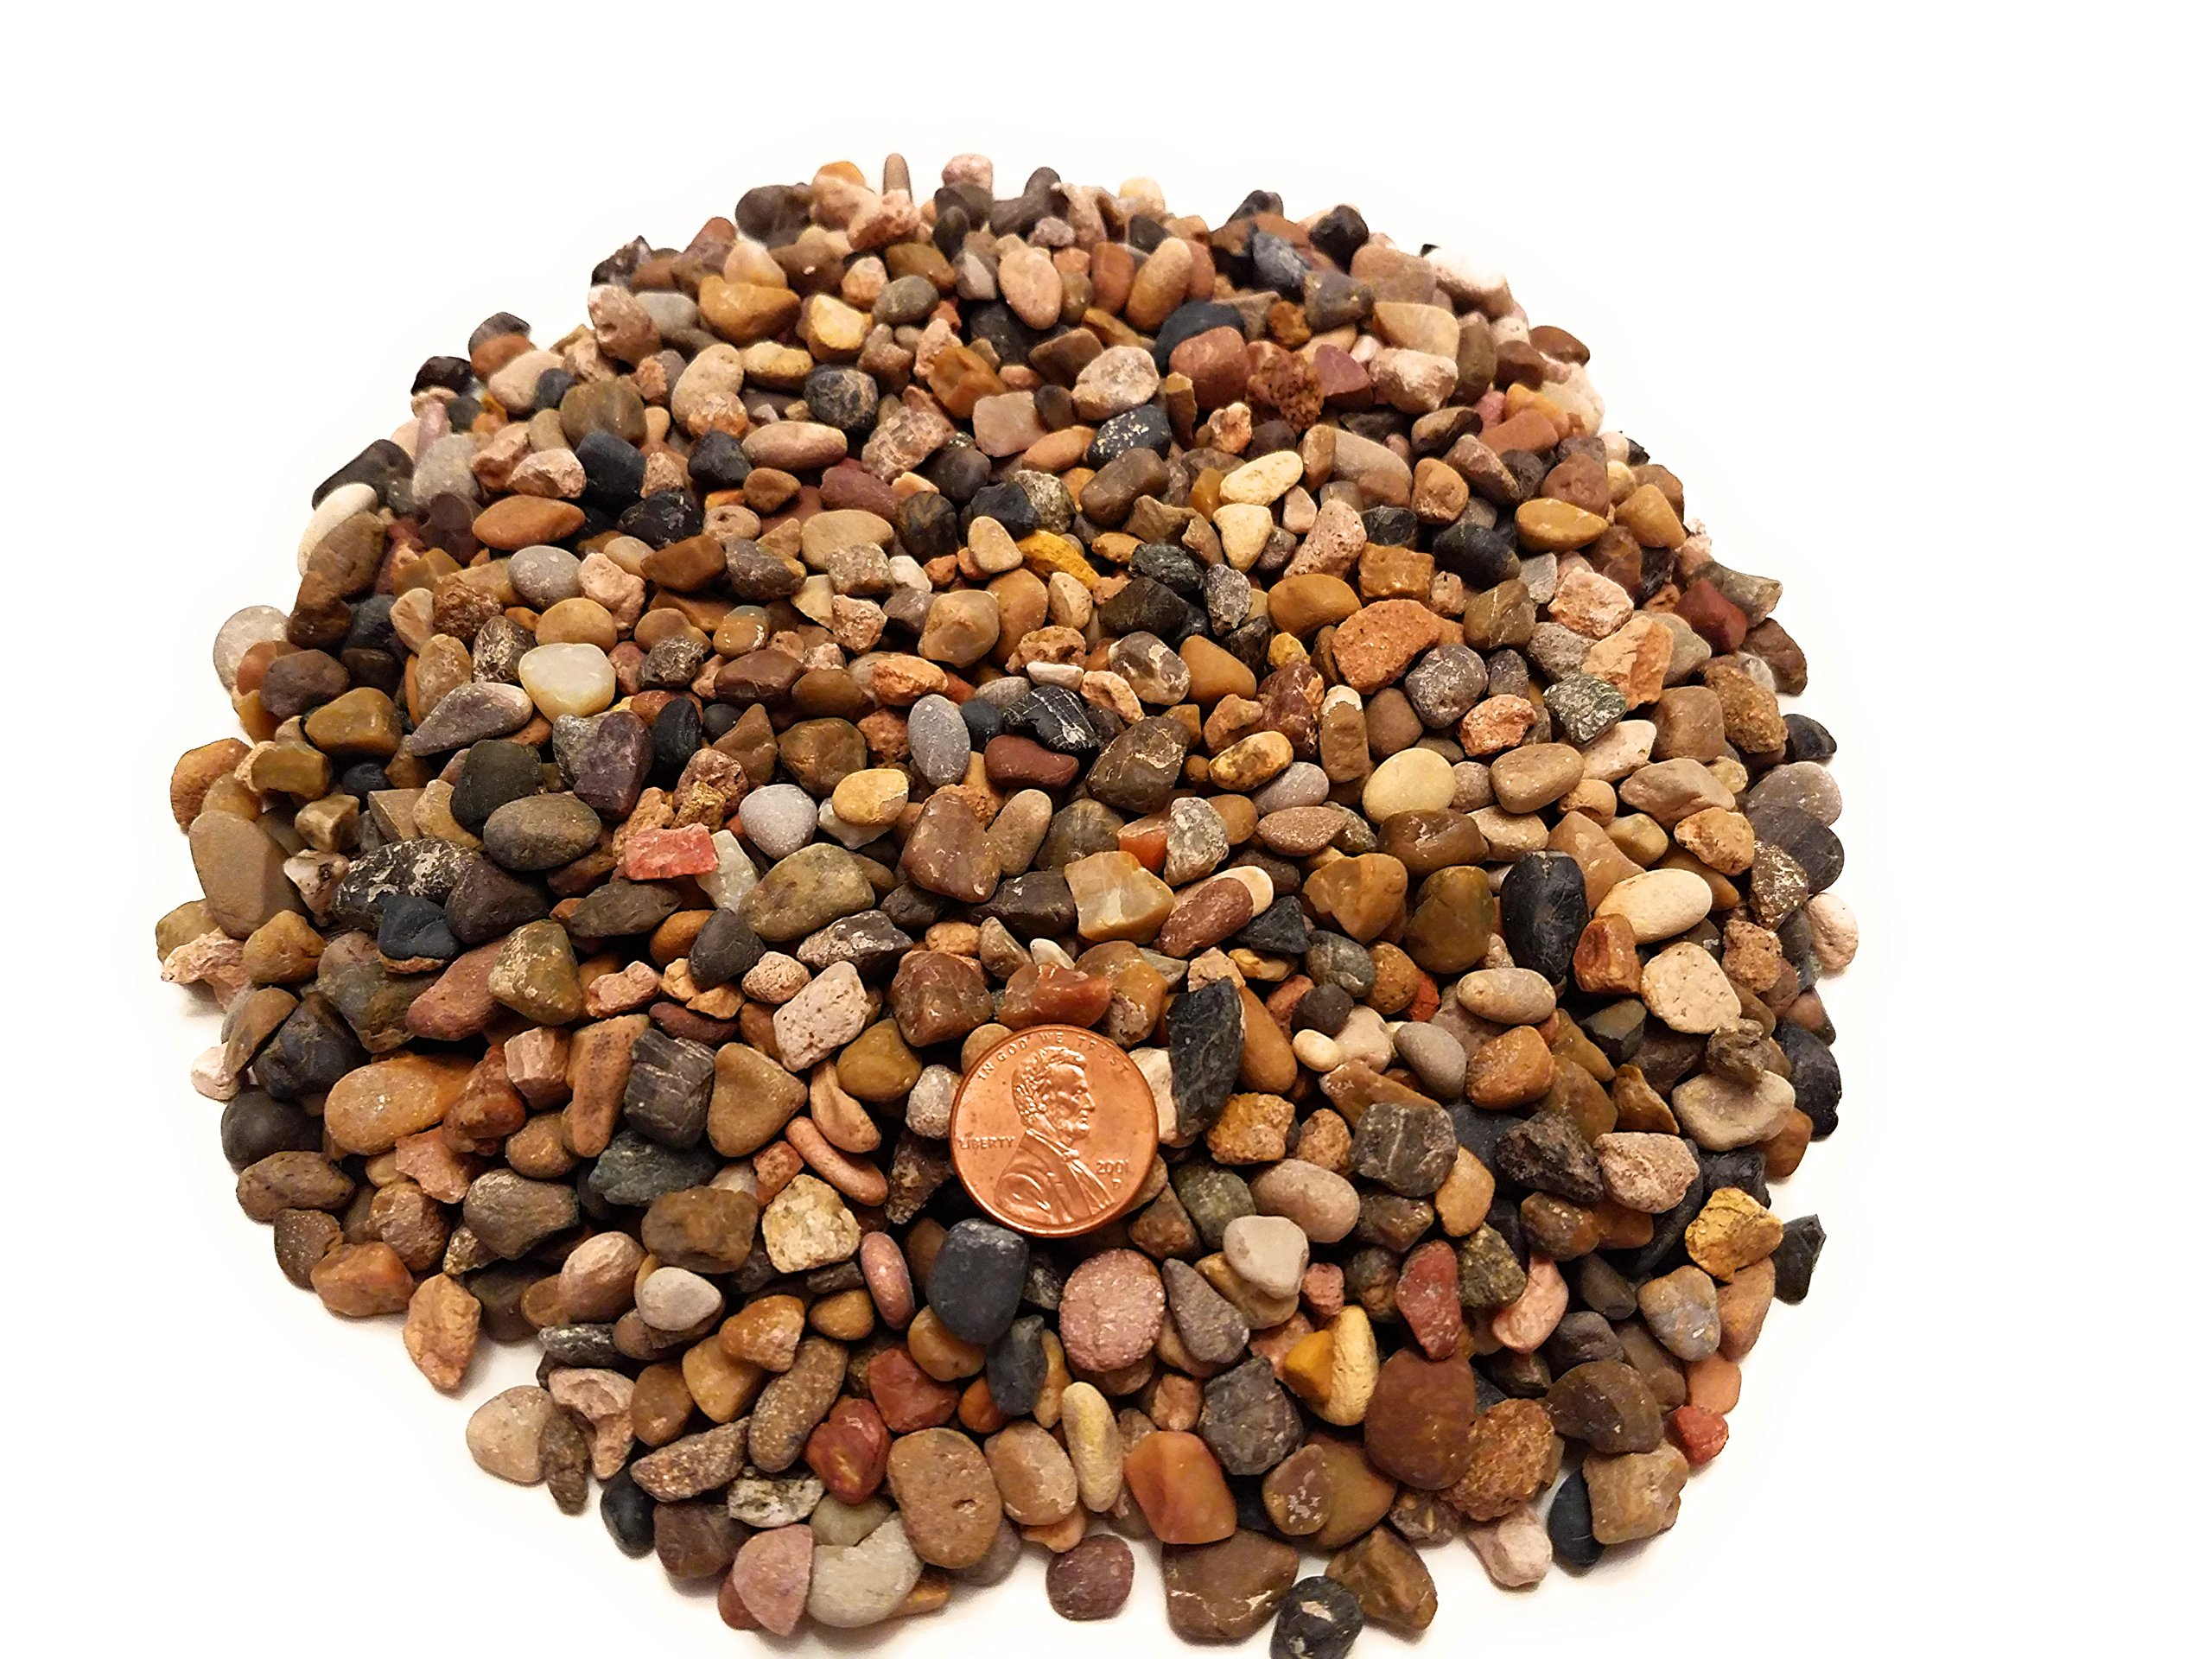 River Rocks for Fairy Gardens, Crafts, Terrariums, Vase Filler, Outdoor Decor by Star-Essence